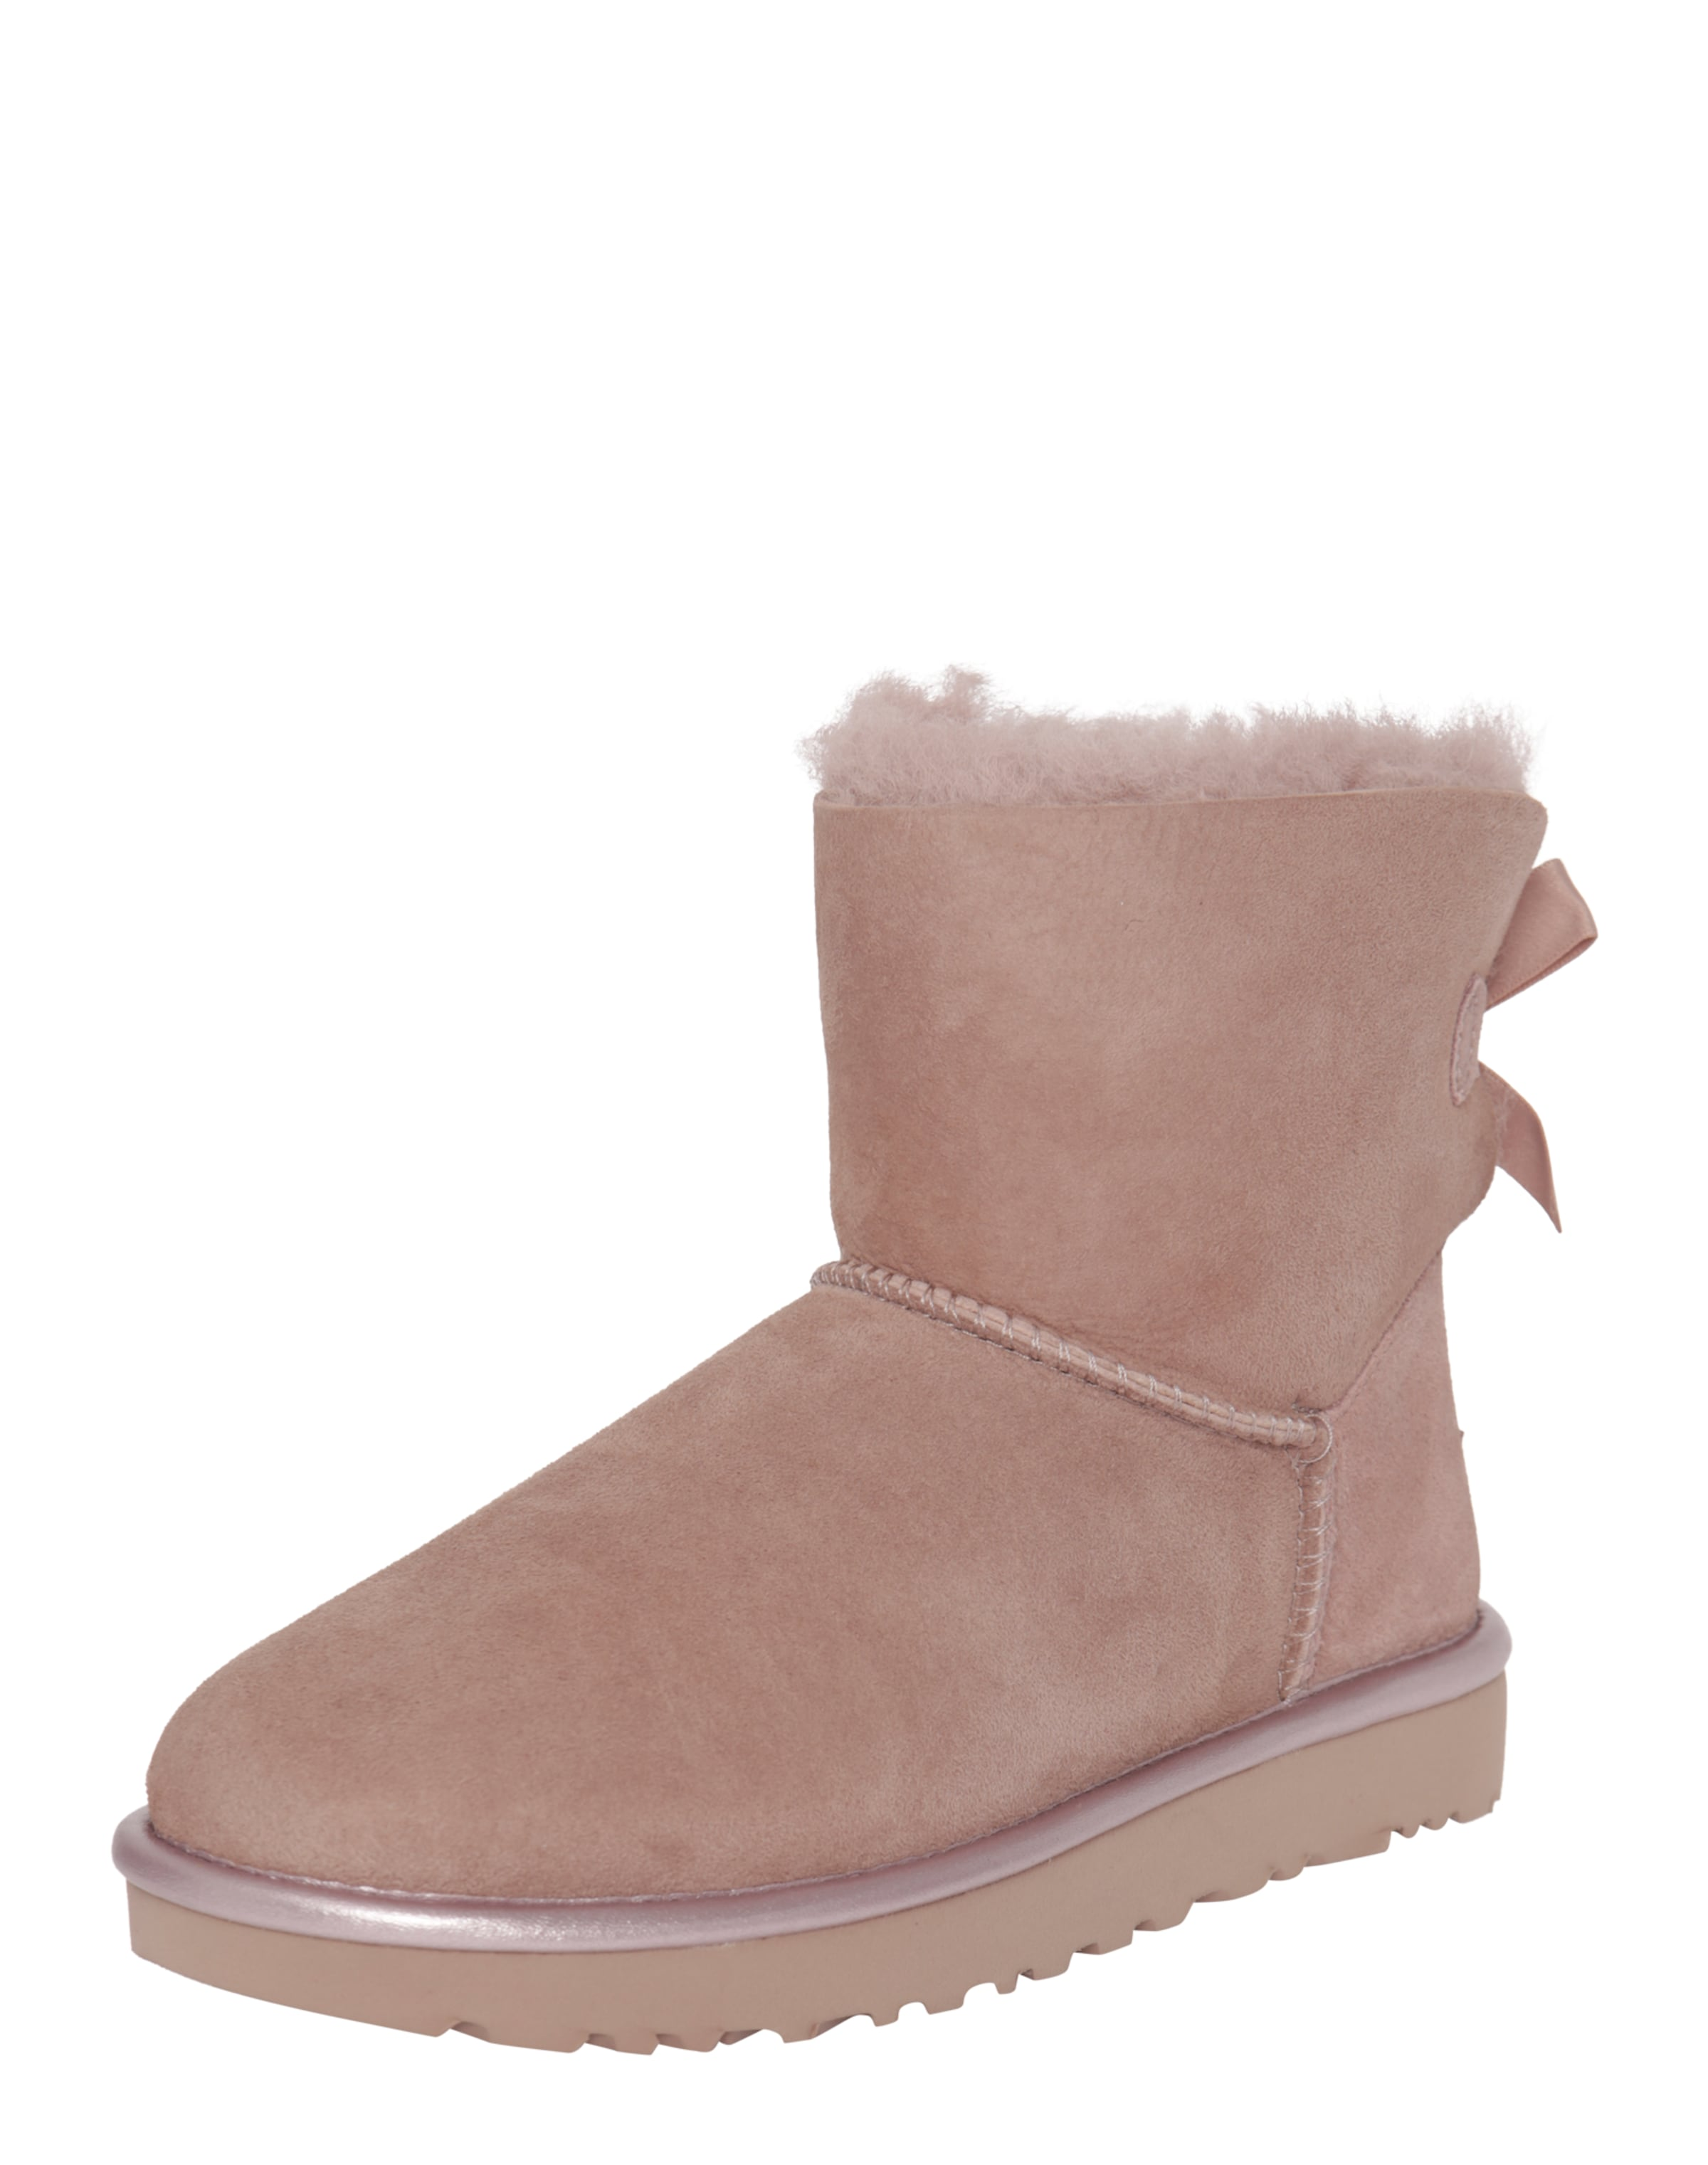 Chaussures Roses Ugg Australia Bailey Pour Les Hommes xfGiUfCpg7